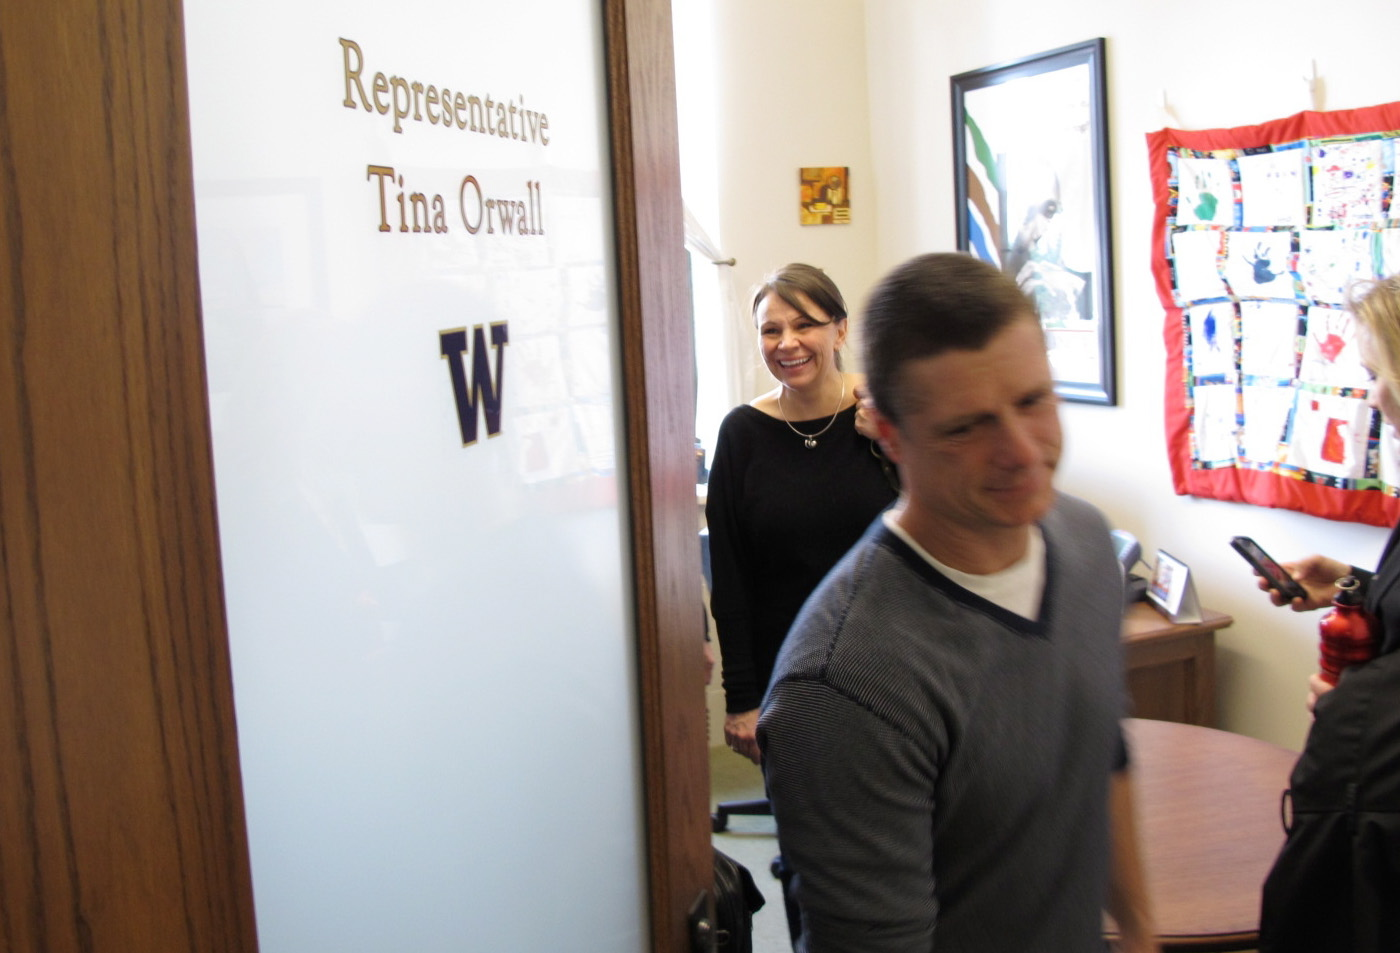 Alan Northrop, right, and his girlfriend, Shawna Smith, left, leave the office of Rep. Tina Orwall, D- Des Moines, following a meeting in Olympia.